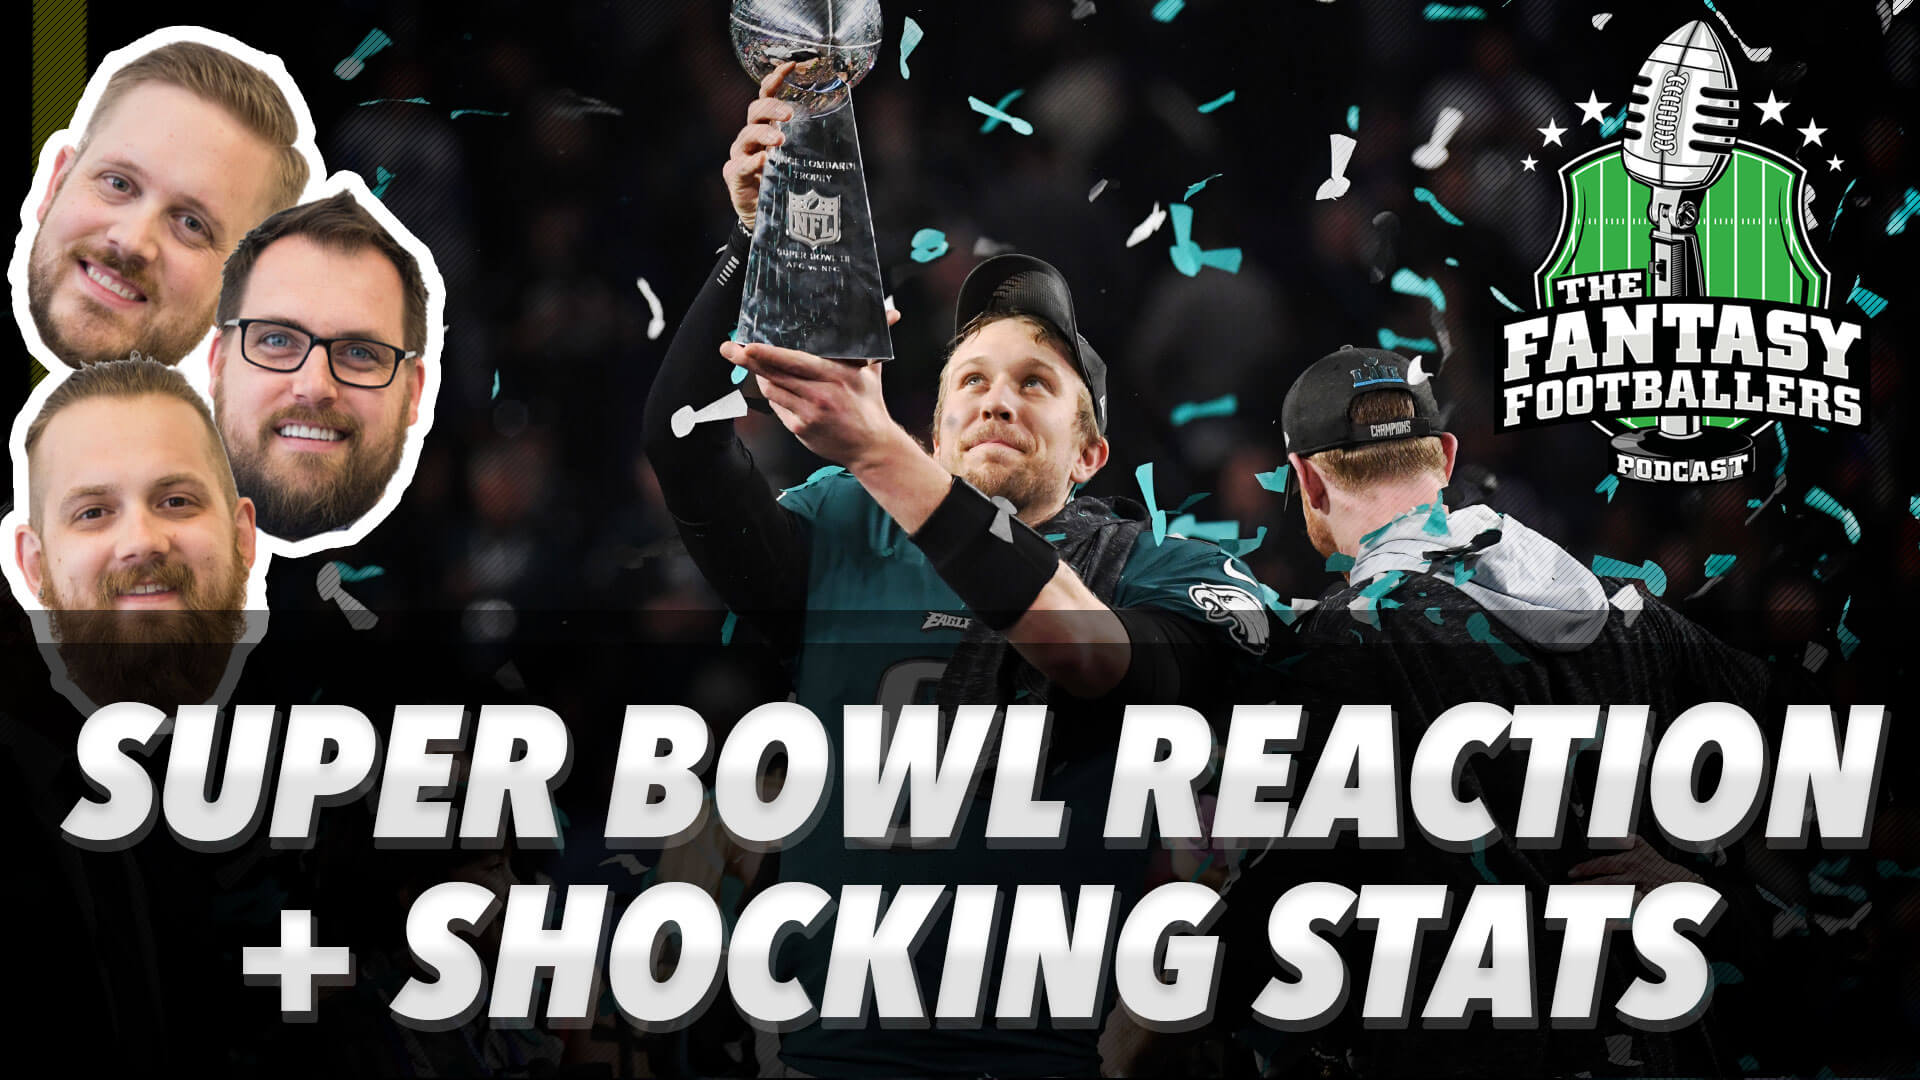 Super Bowl Reaction + Shocking Stats from 2017 - Ep. #520